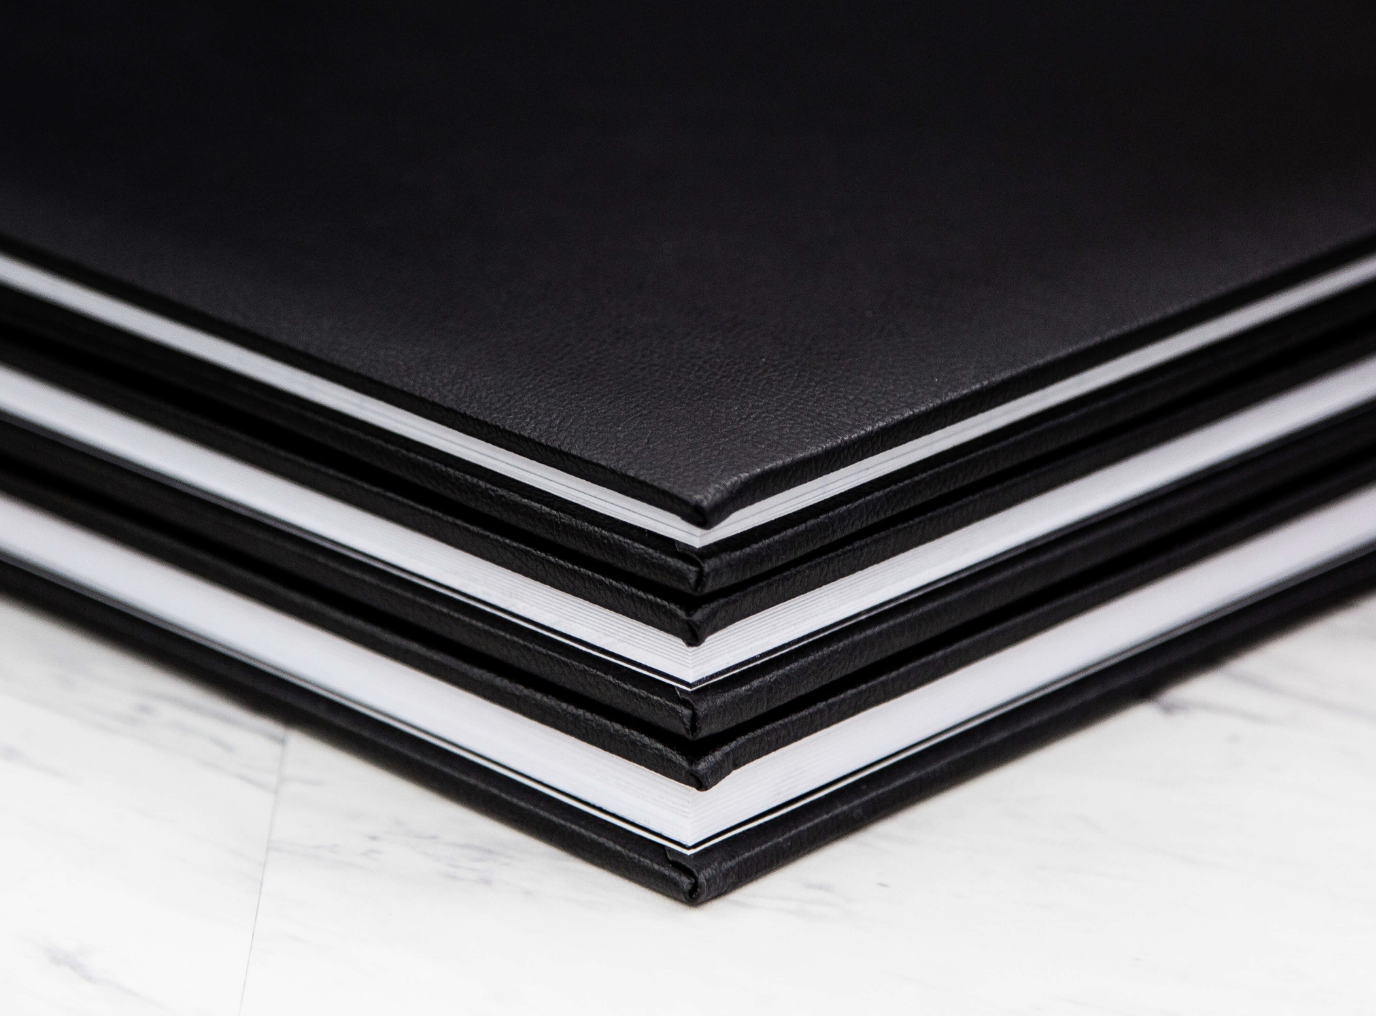 Leather Photo Books with embossed lettering